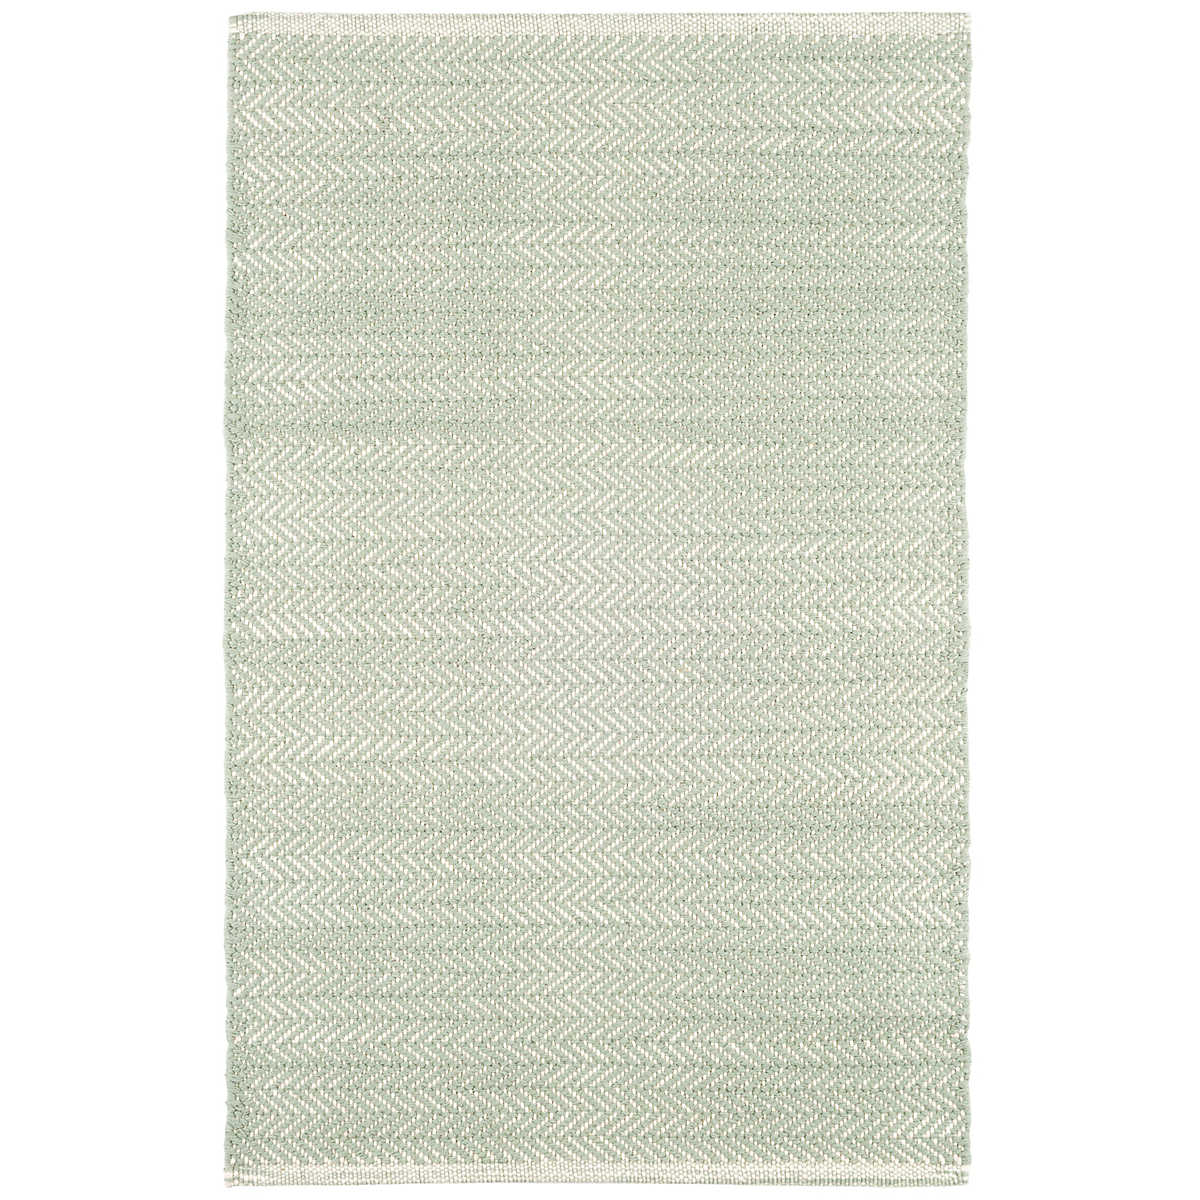 Herringbone Ocean Woven Cotton Rug Dash Amp Albert